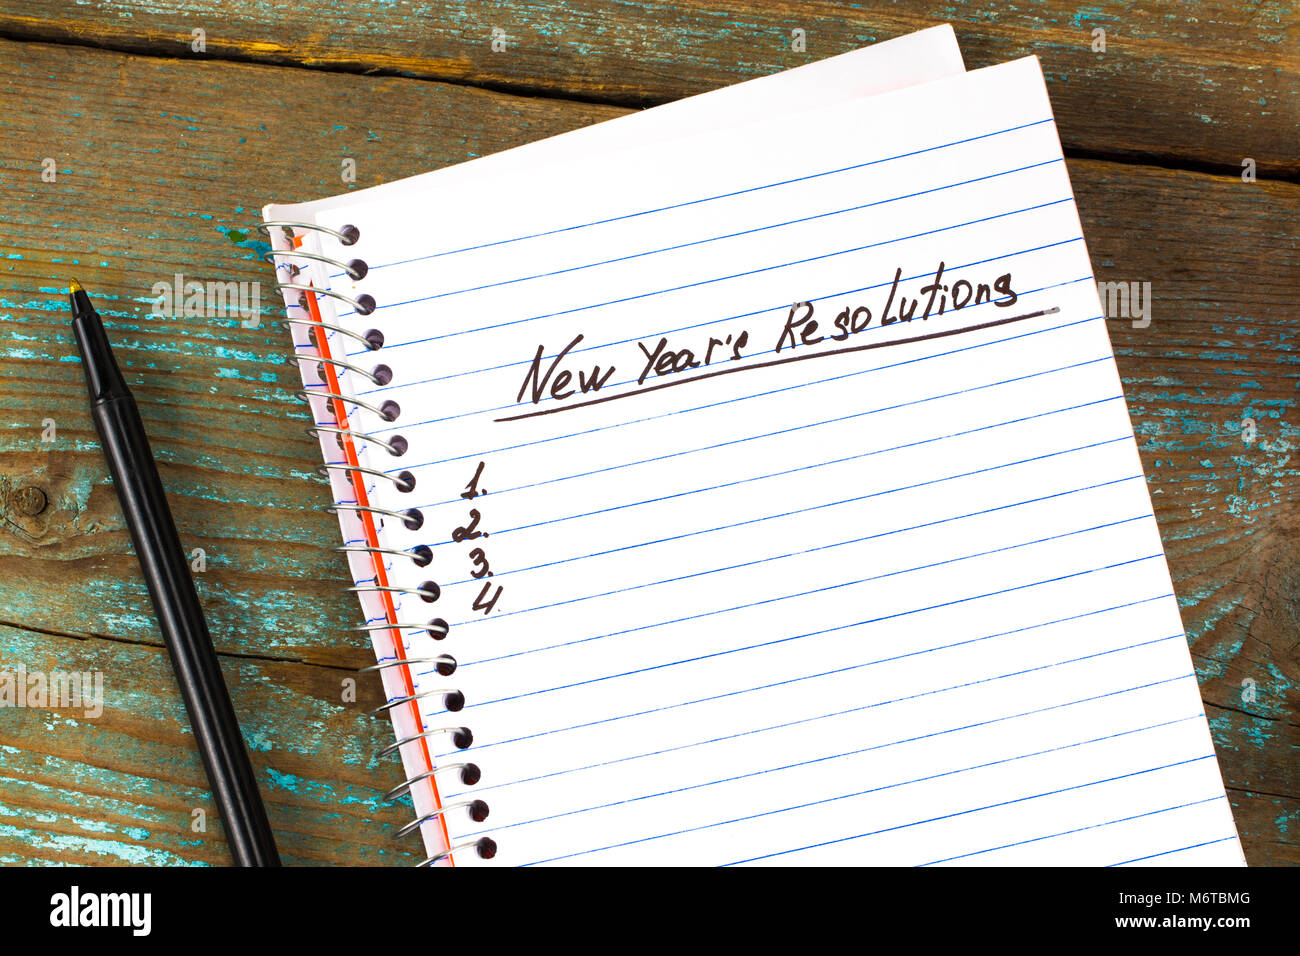 New Year's Resolution written on a notepad and pen  New Year Stock